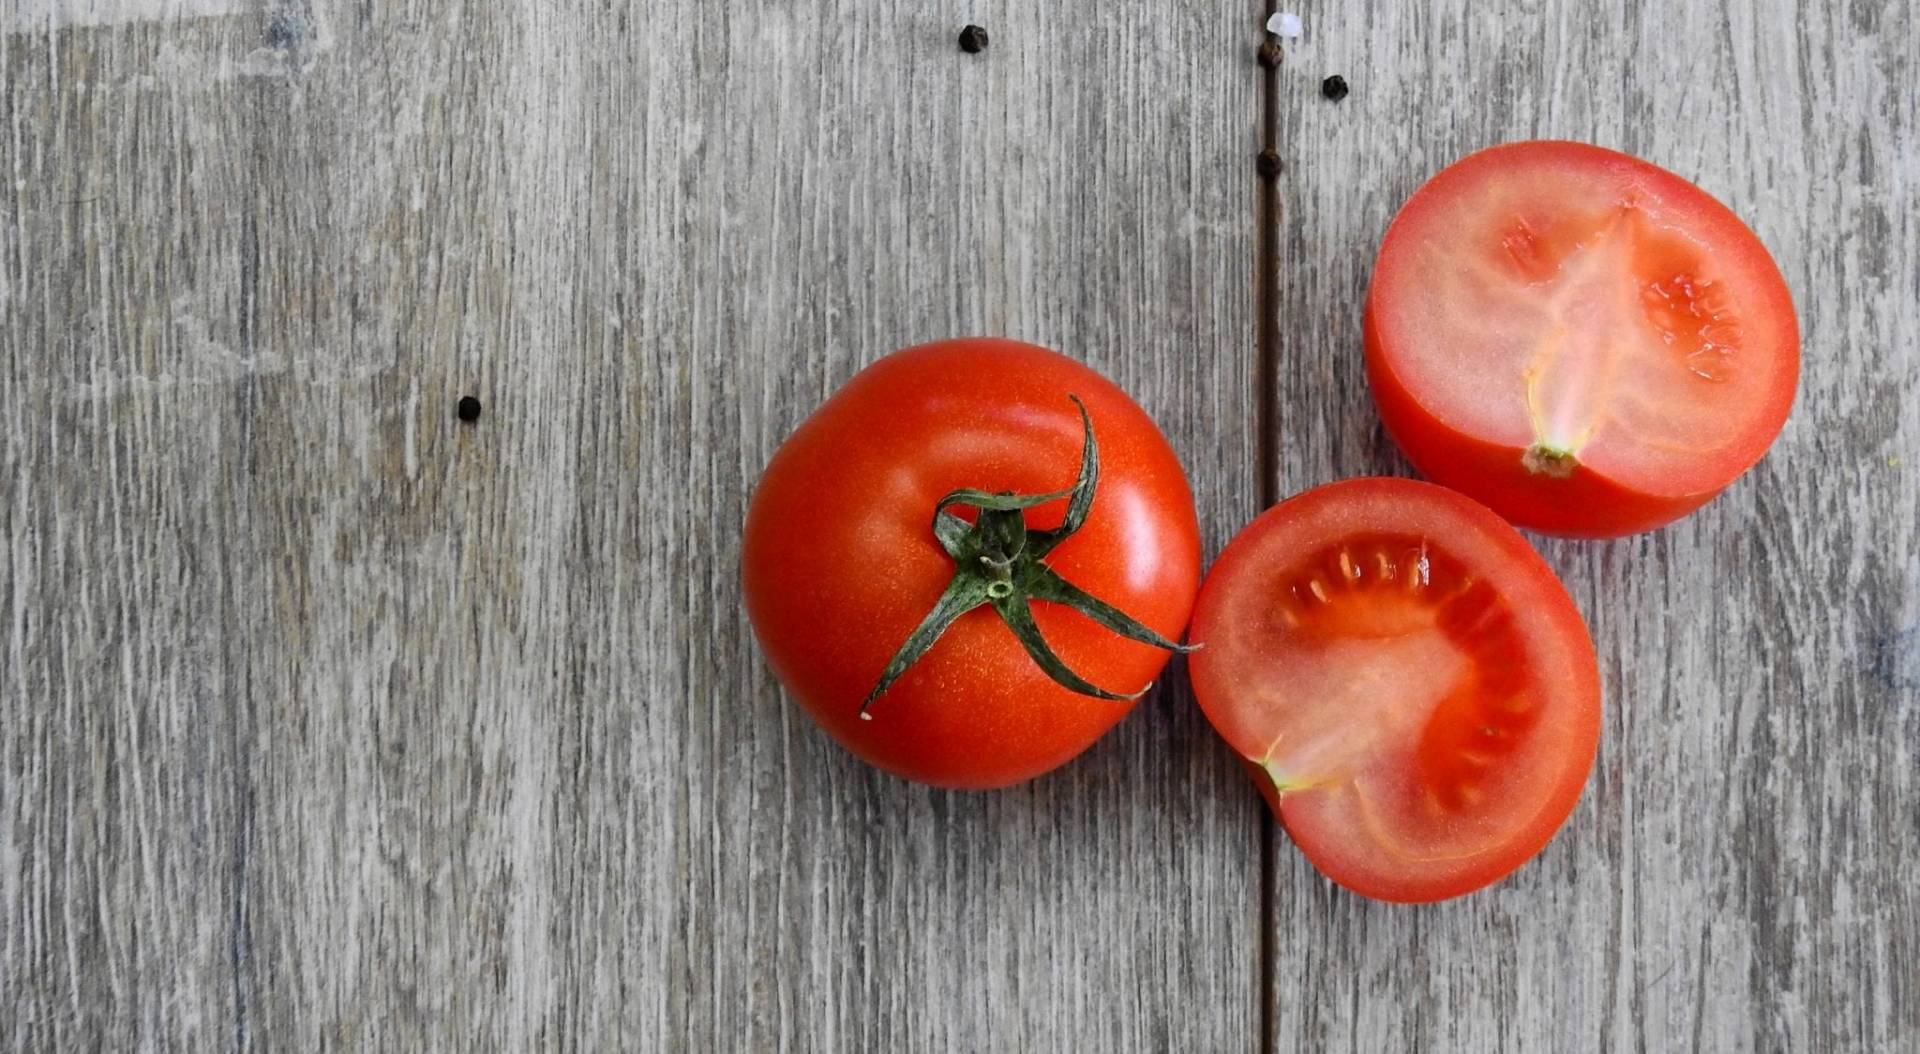 Tomatoes make great healthy snacks